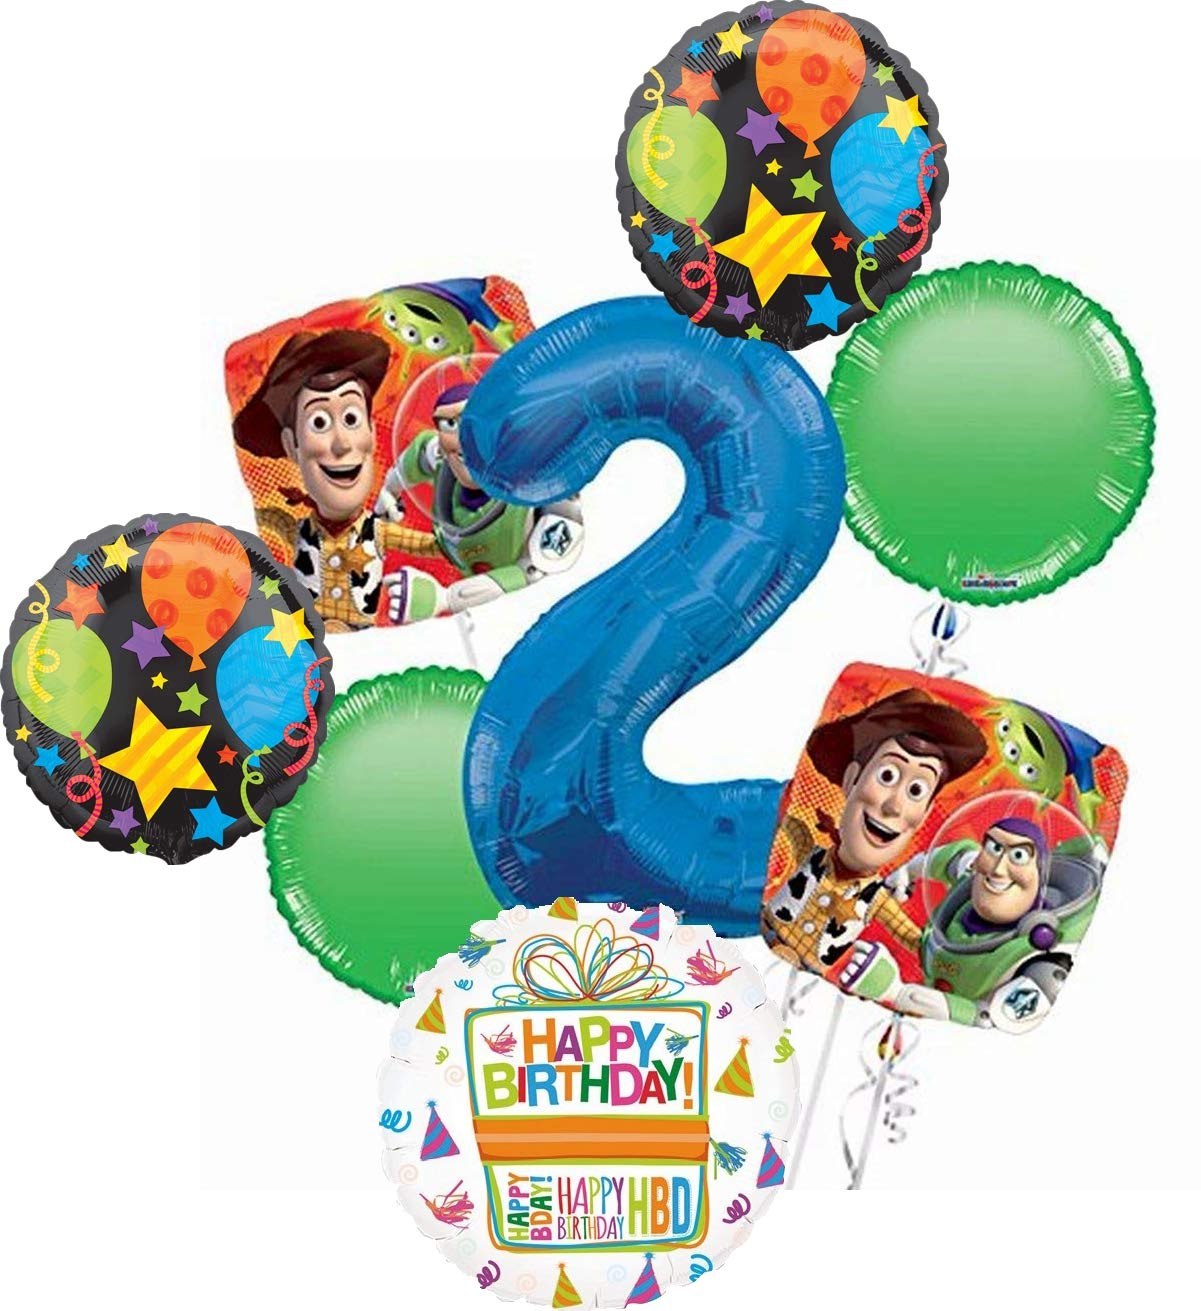 Details about  /Birthday Party Supplies for Kids boy  Game Birthday Party Decorations